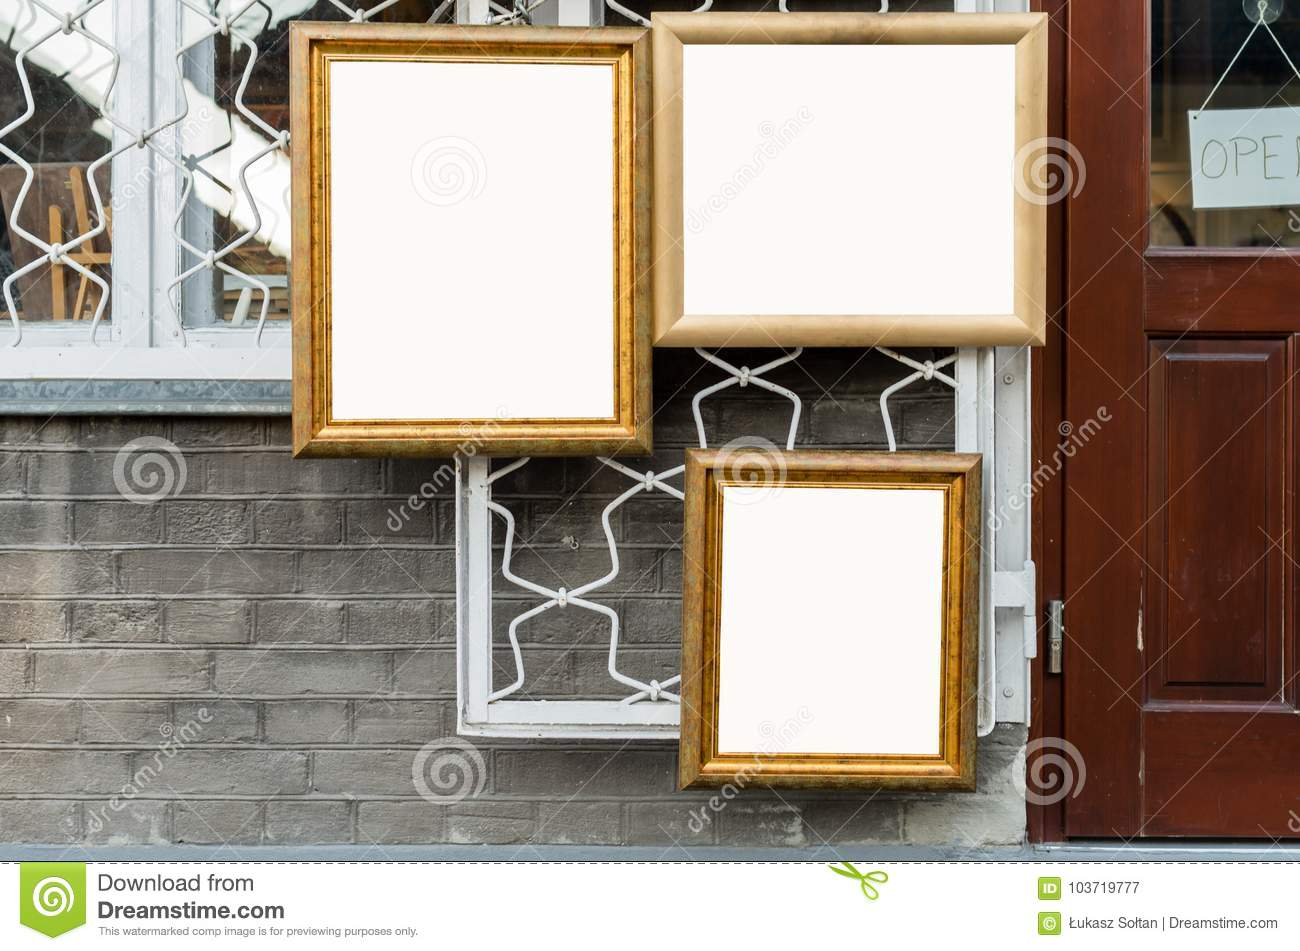 Three picture wooden frames on the wall outside Art Gallery, B